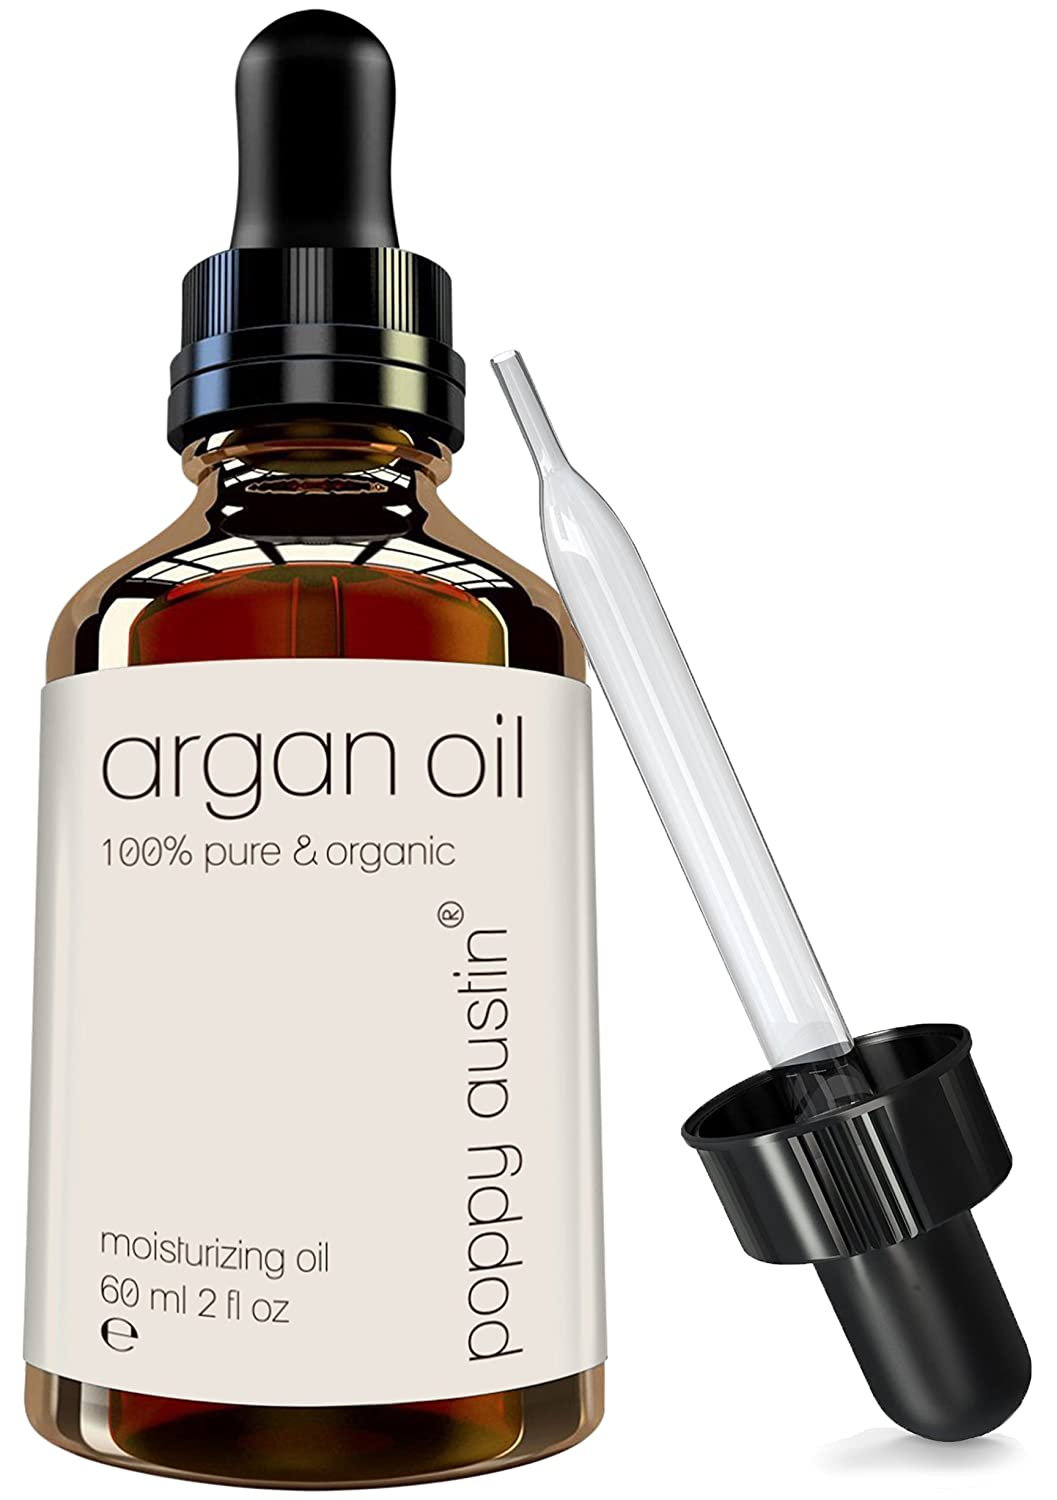 Pure Argan Oil for Hair, Skin & Face by Poppy Austin® - The Finest, 100% Purified Moroccan Argon Oil Treatment - Organic, Cold Pressed, Hand Made & Responsibly Sourced Argania Spinosa - HUGE 60ml